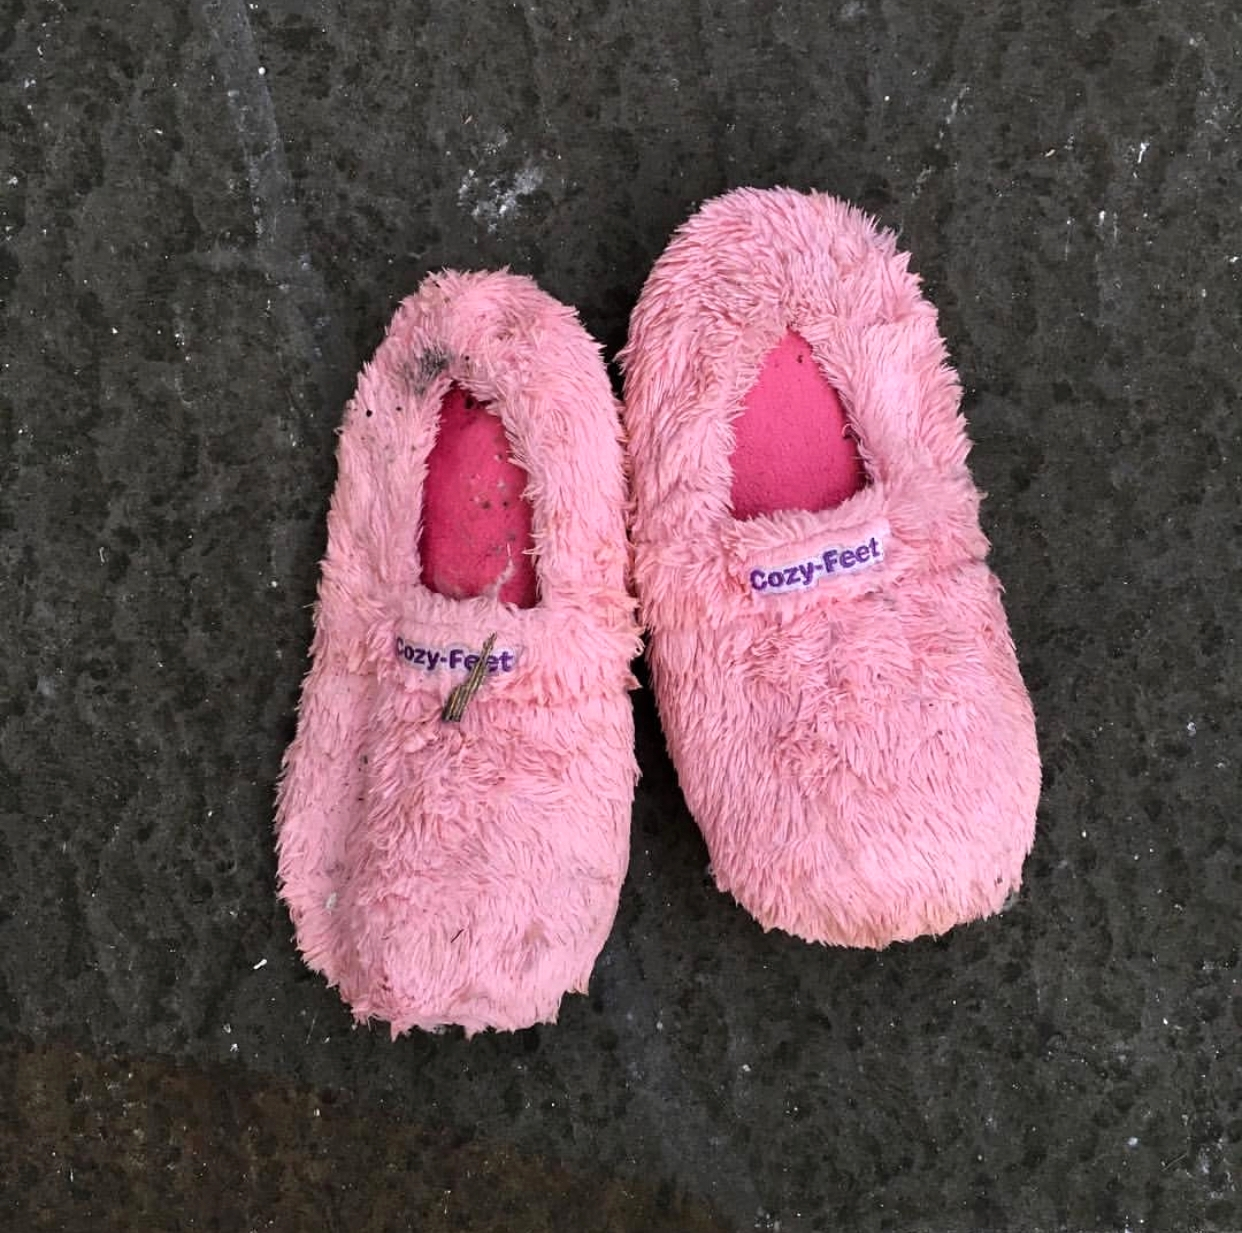 Slippers, Brighton and Hove, 2017